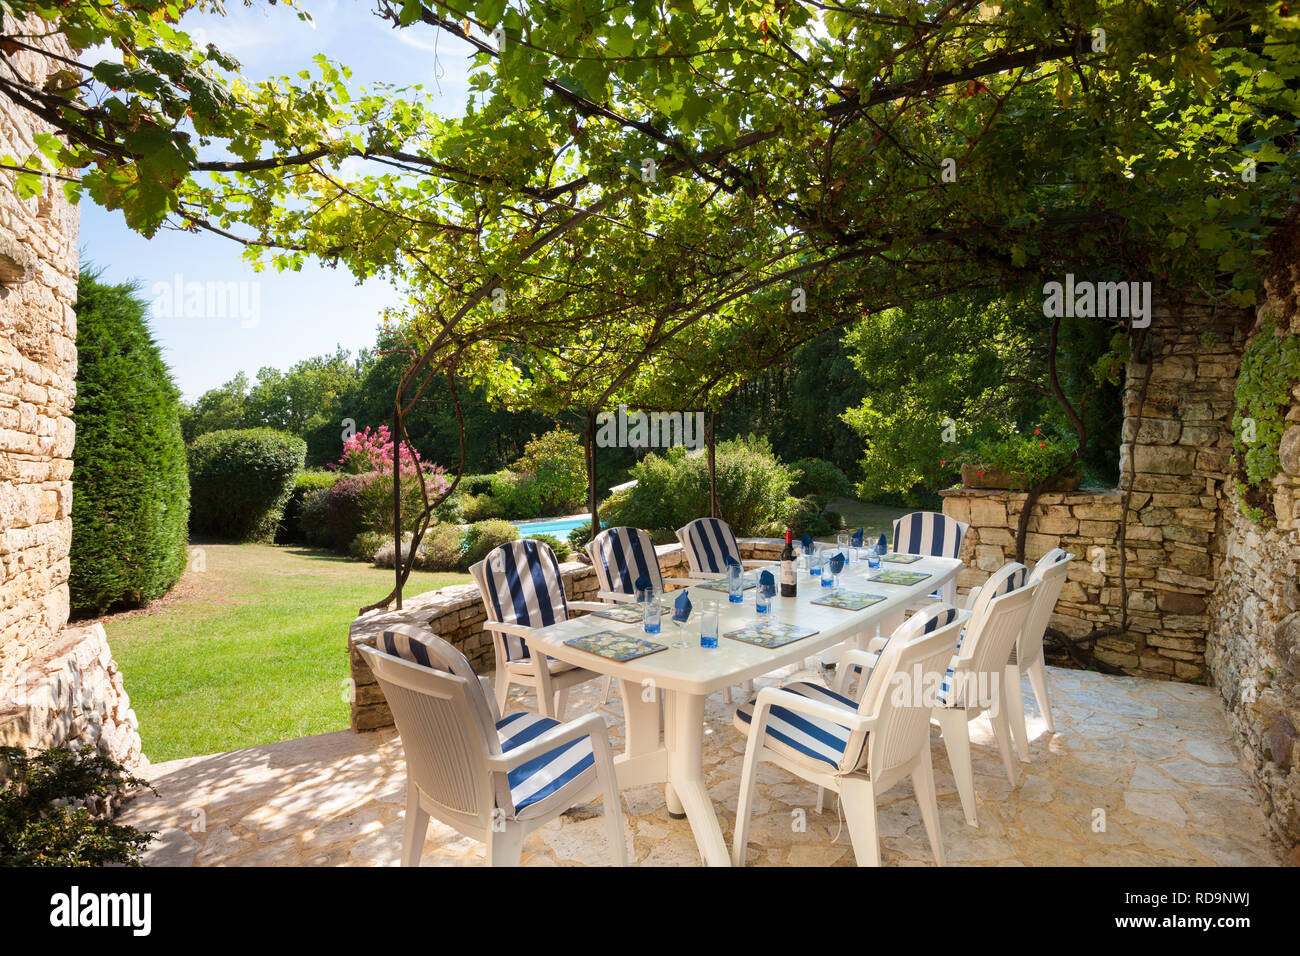 Garden With Swimming Pool table and chairs set in a beatiful french garden with